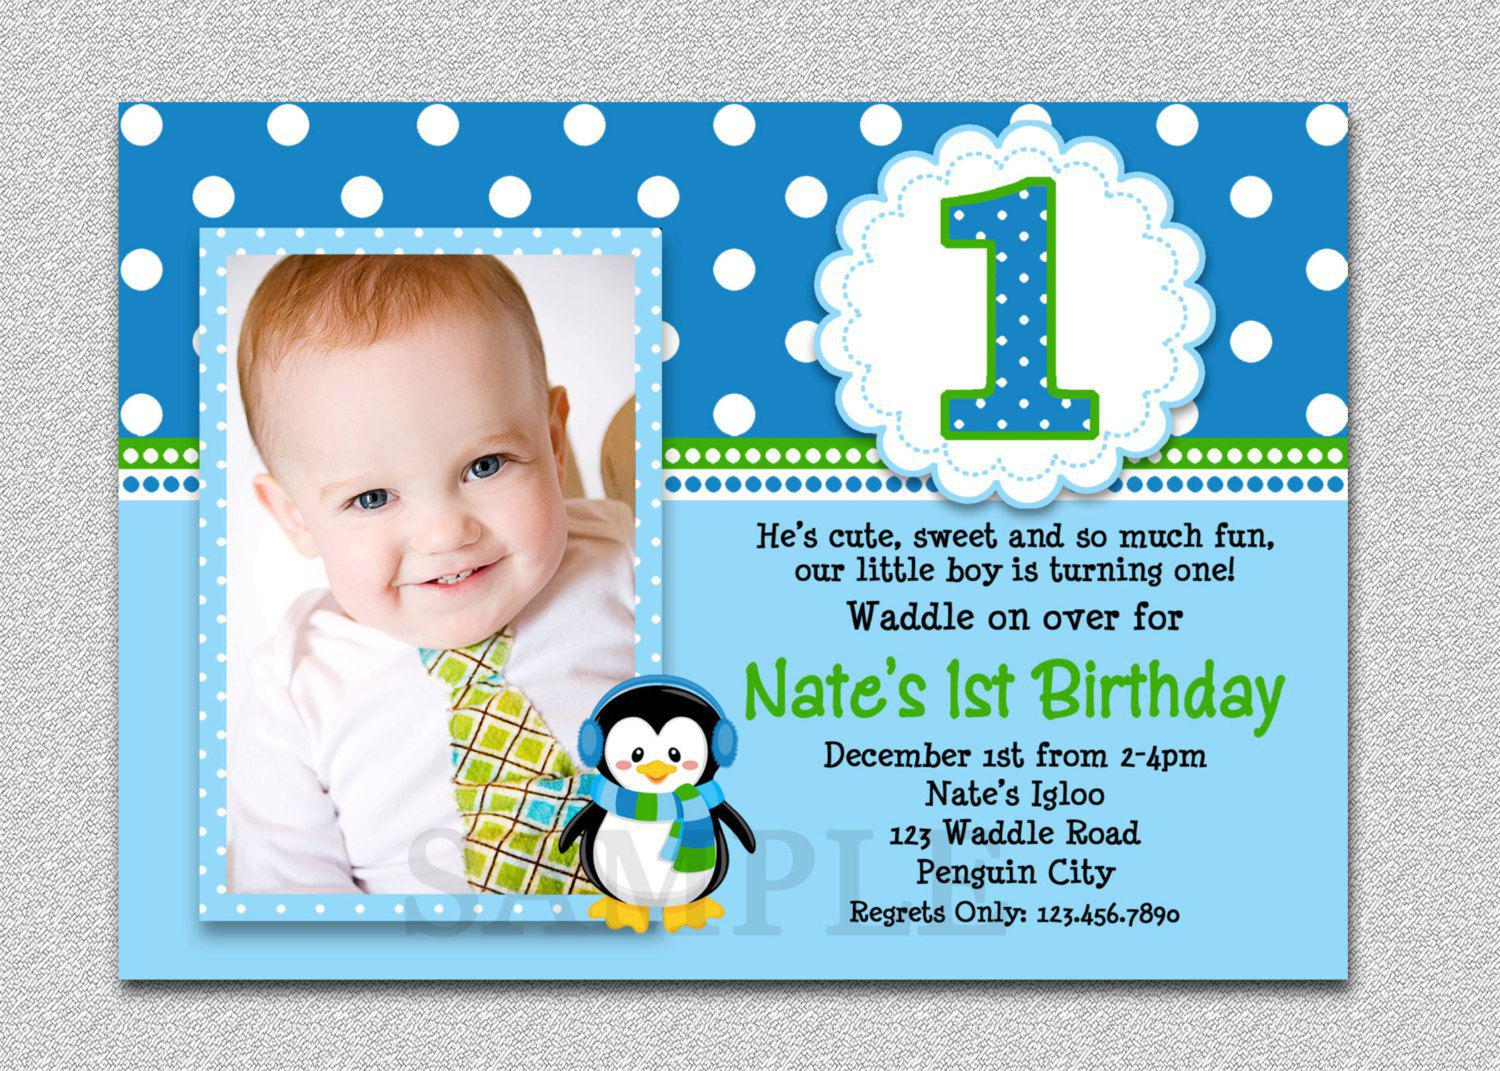 First Birthday Invitations For Kids Birhday Invites Create